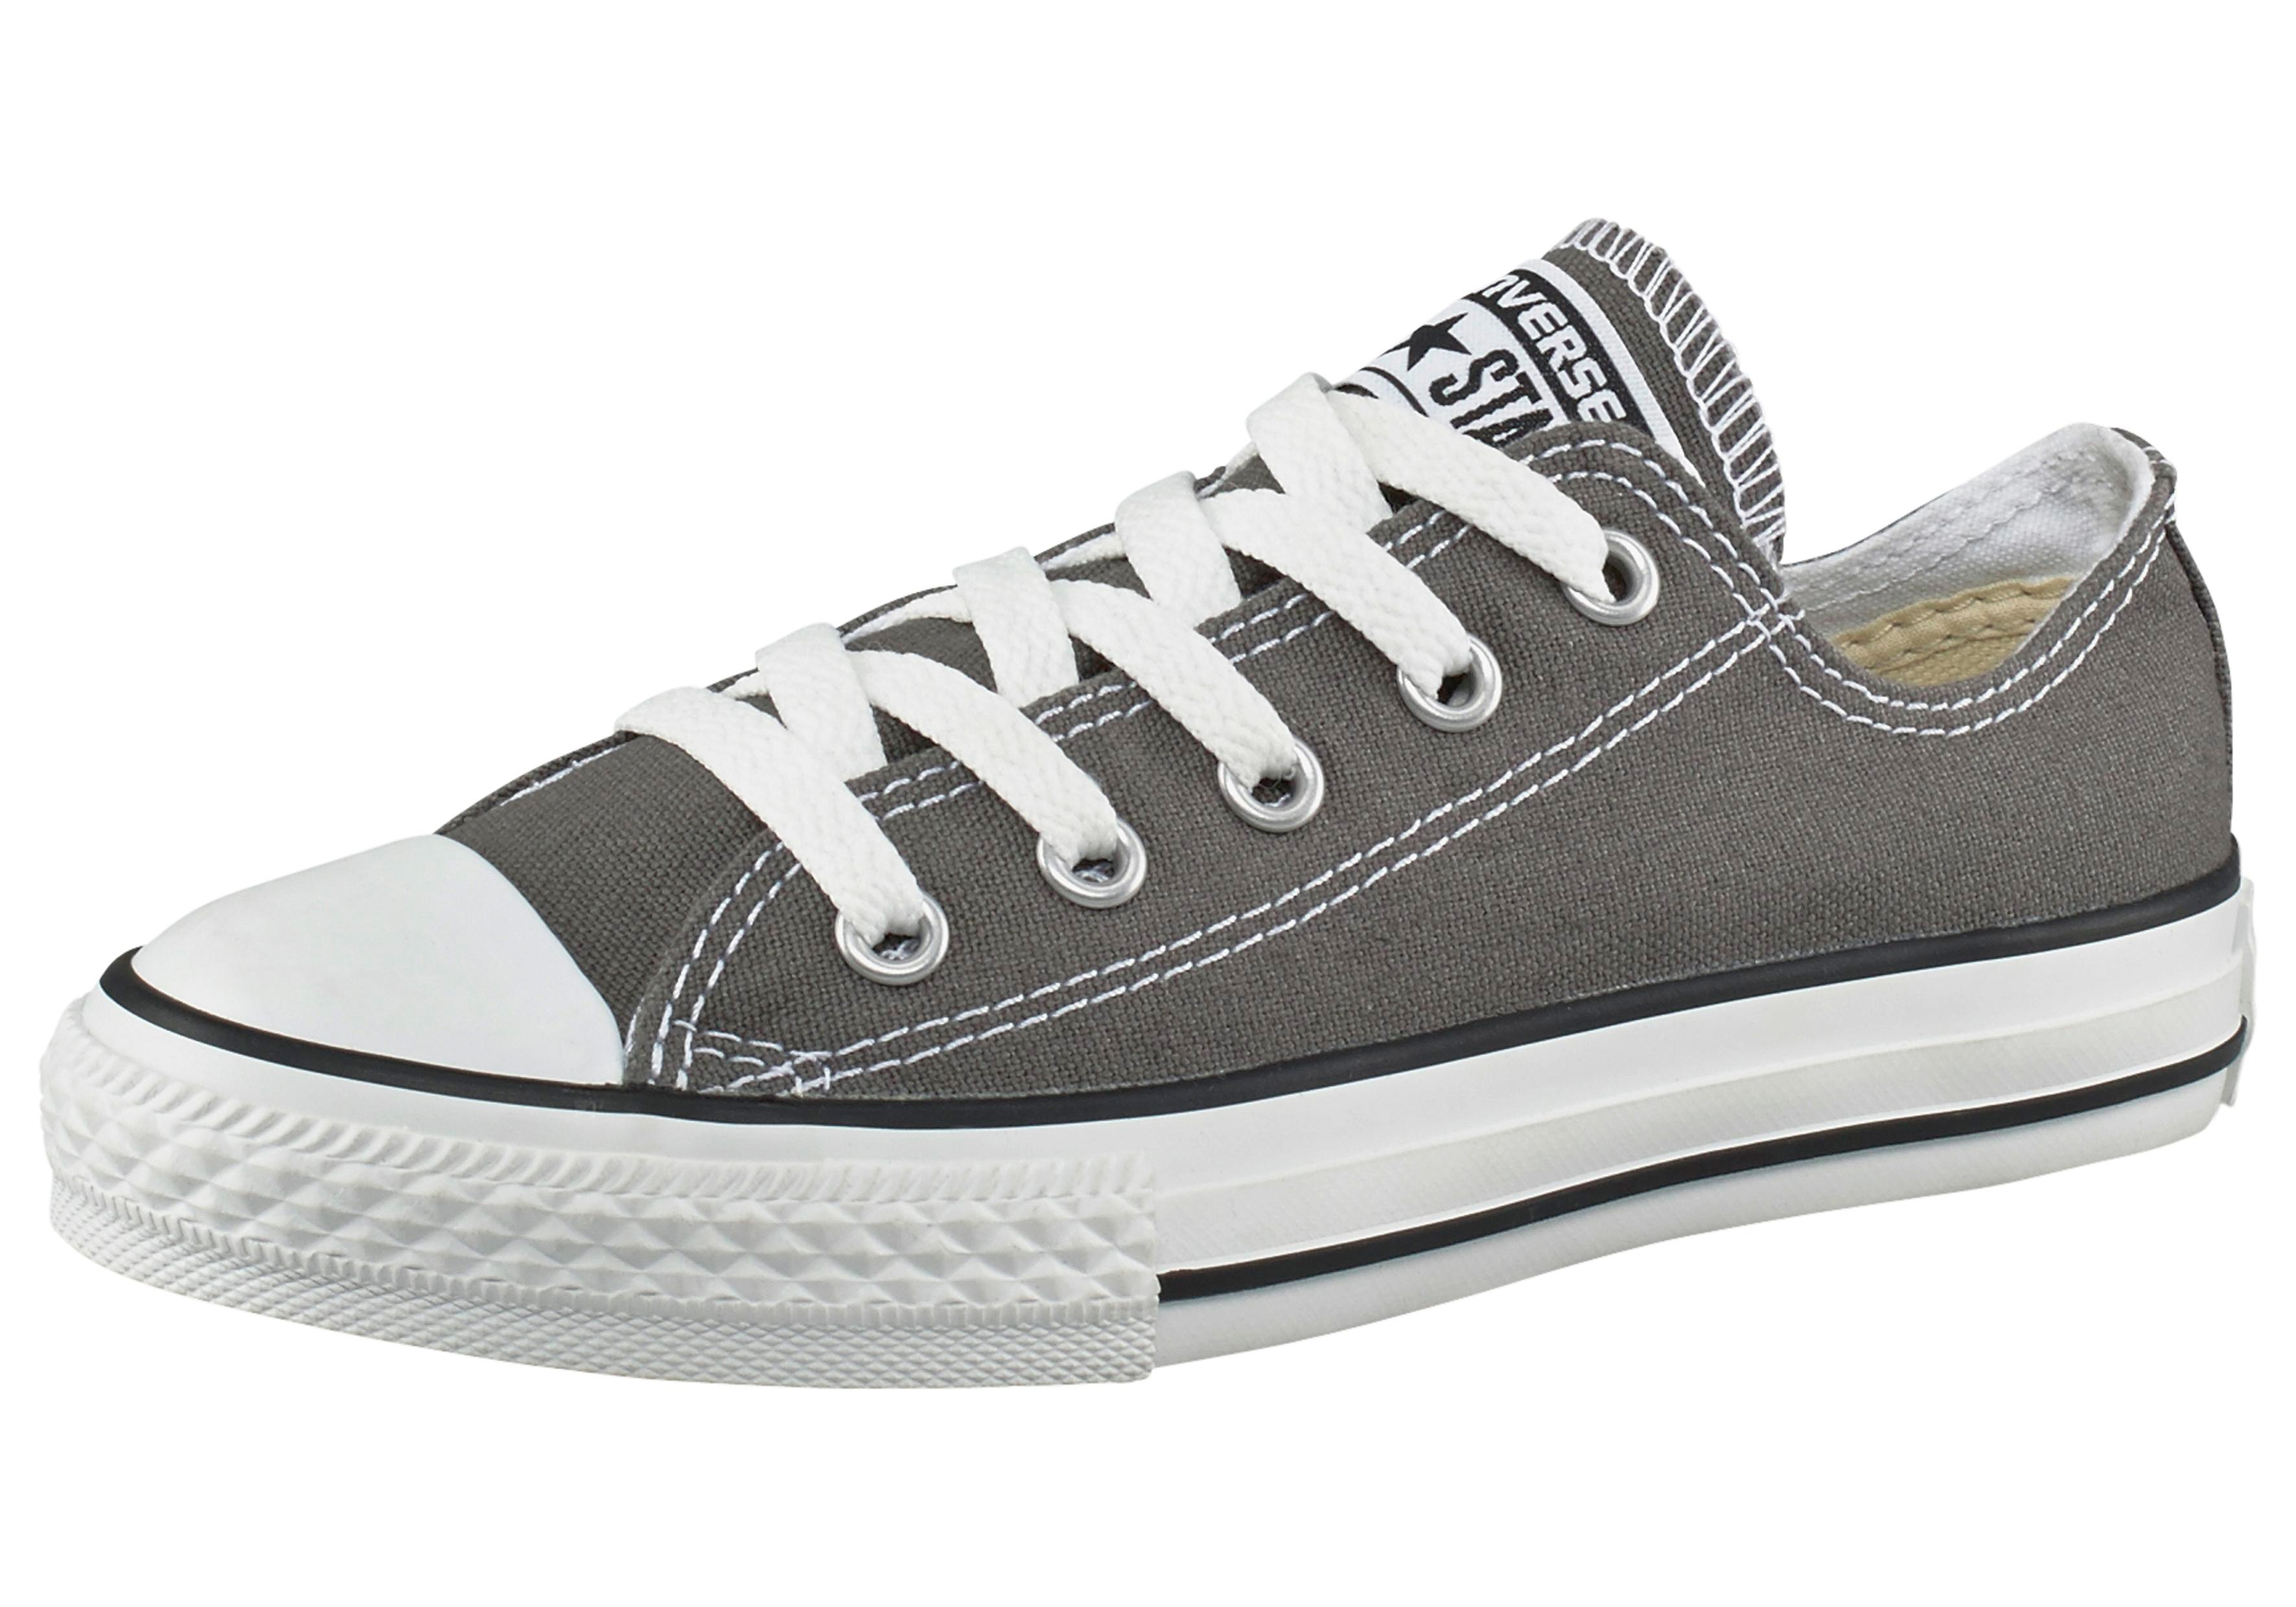 9697a68ce7d ... CONVERSE Sneakers Chuck Taylor All Star Core Ox, CONVERSE Sneakers  Chuck Taylor All Star Core Hi, CONVERSE Sneakers Chuck Taylor All Star Core  Mono